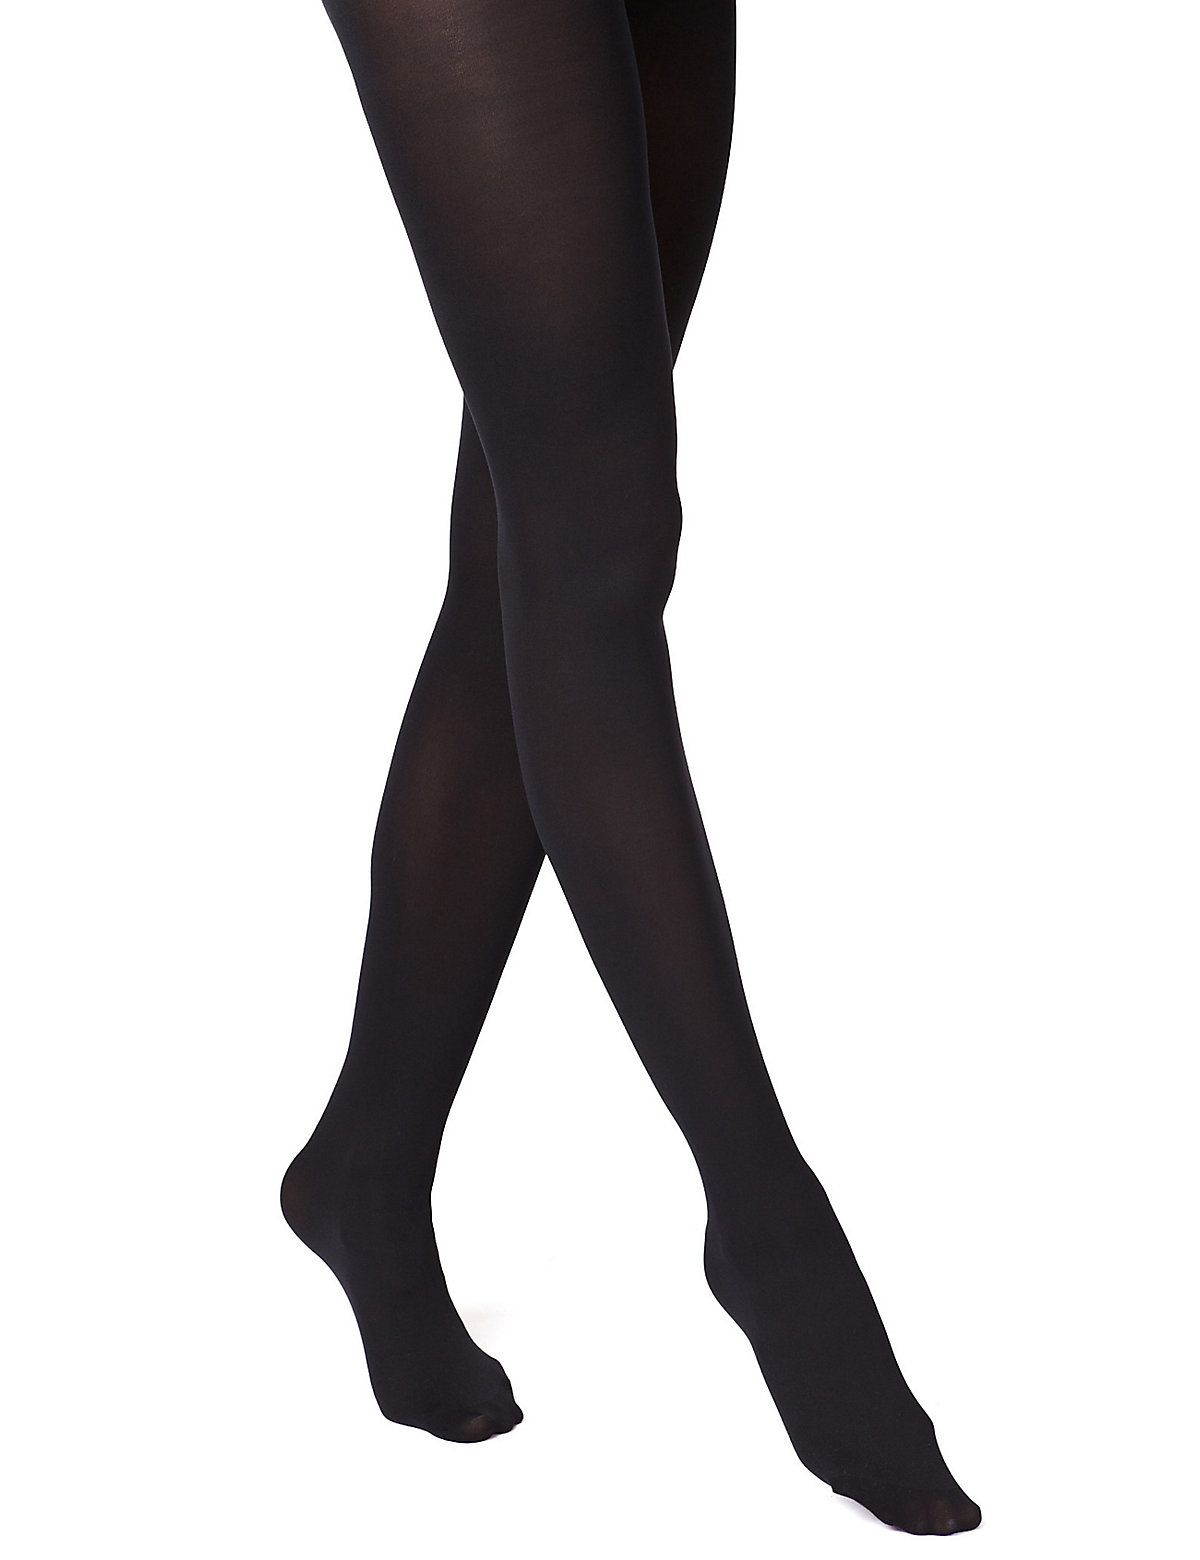 a53a15366 M S - 3 Pairs of Bodysensor™ 60 Denier Opaque Tights (2 x packs)